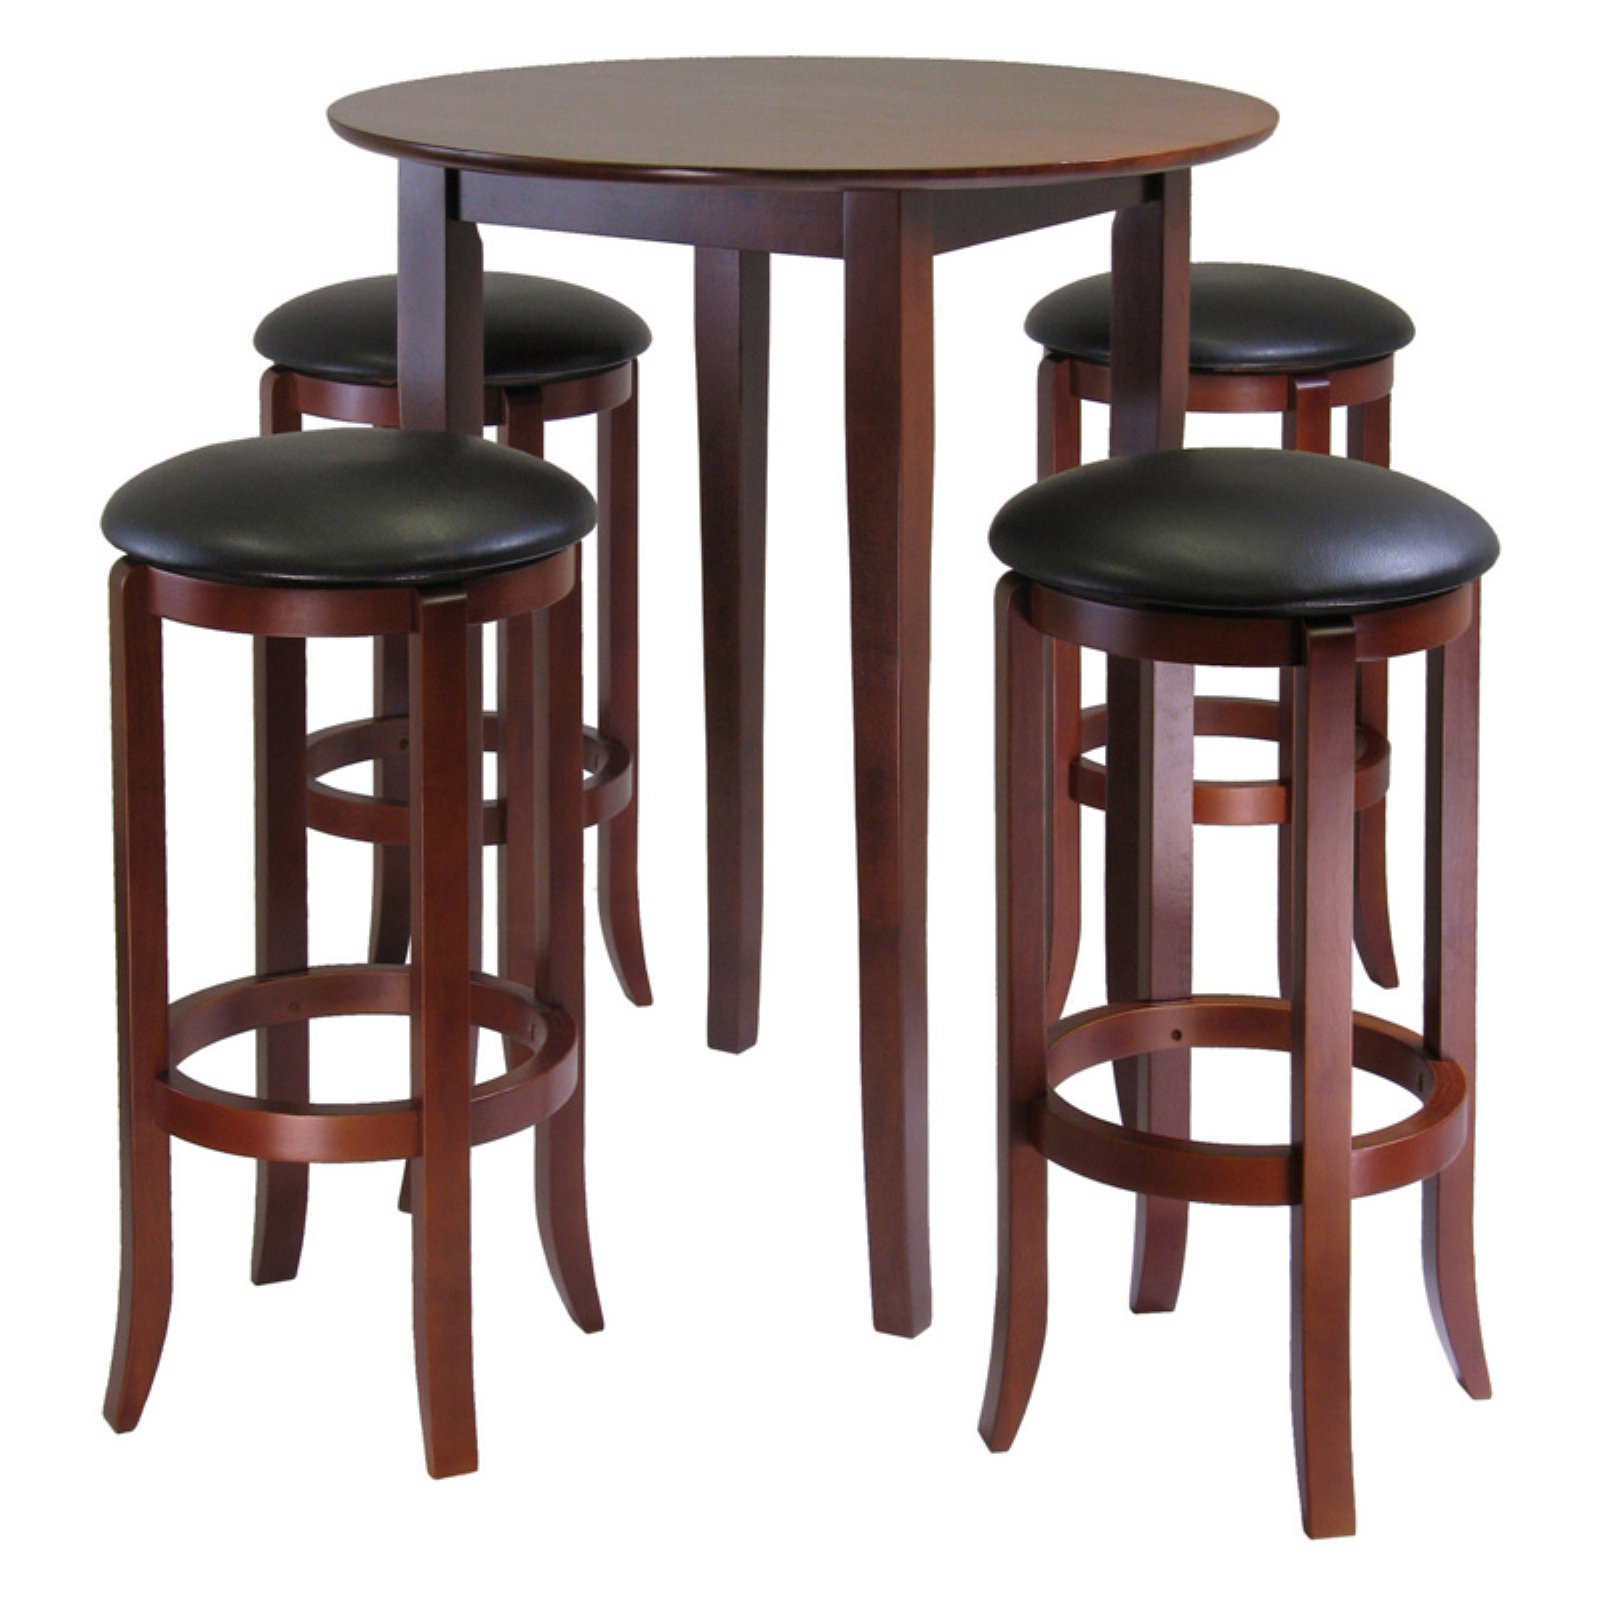 Fiona Round 5pc High Pub Table Set with PVC Stools by Visiondecor Furniture